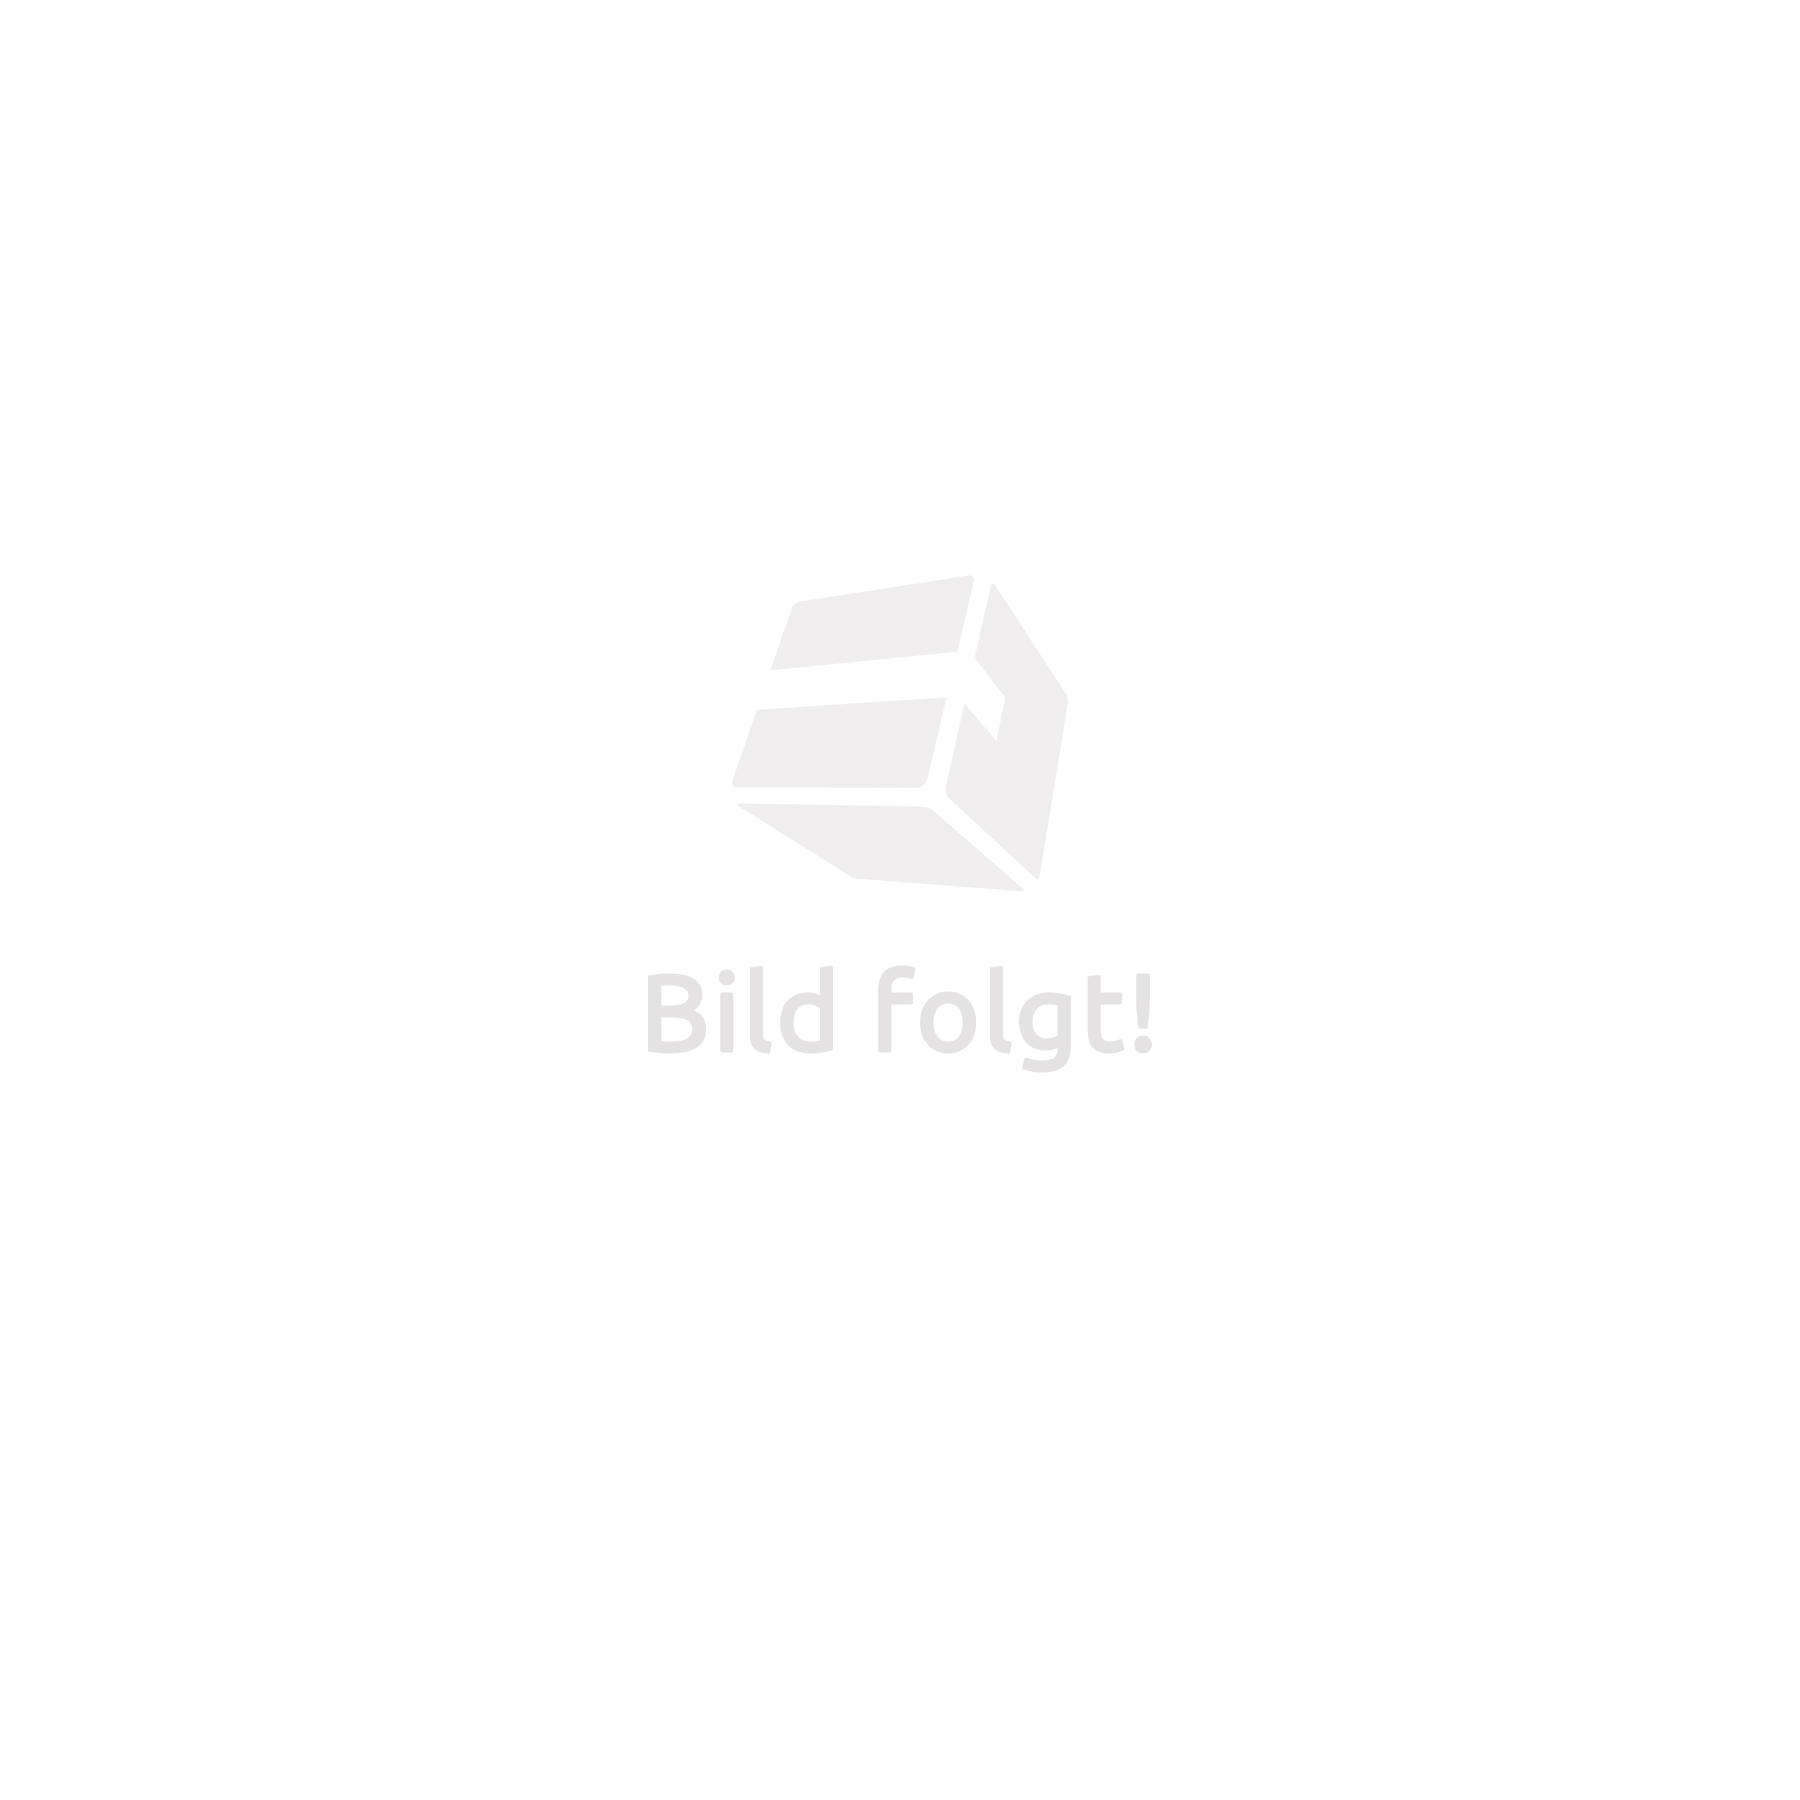 Bar table made of steel foldable